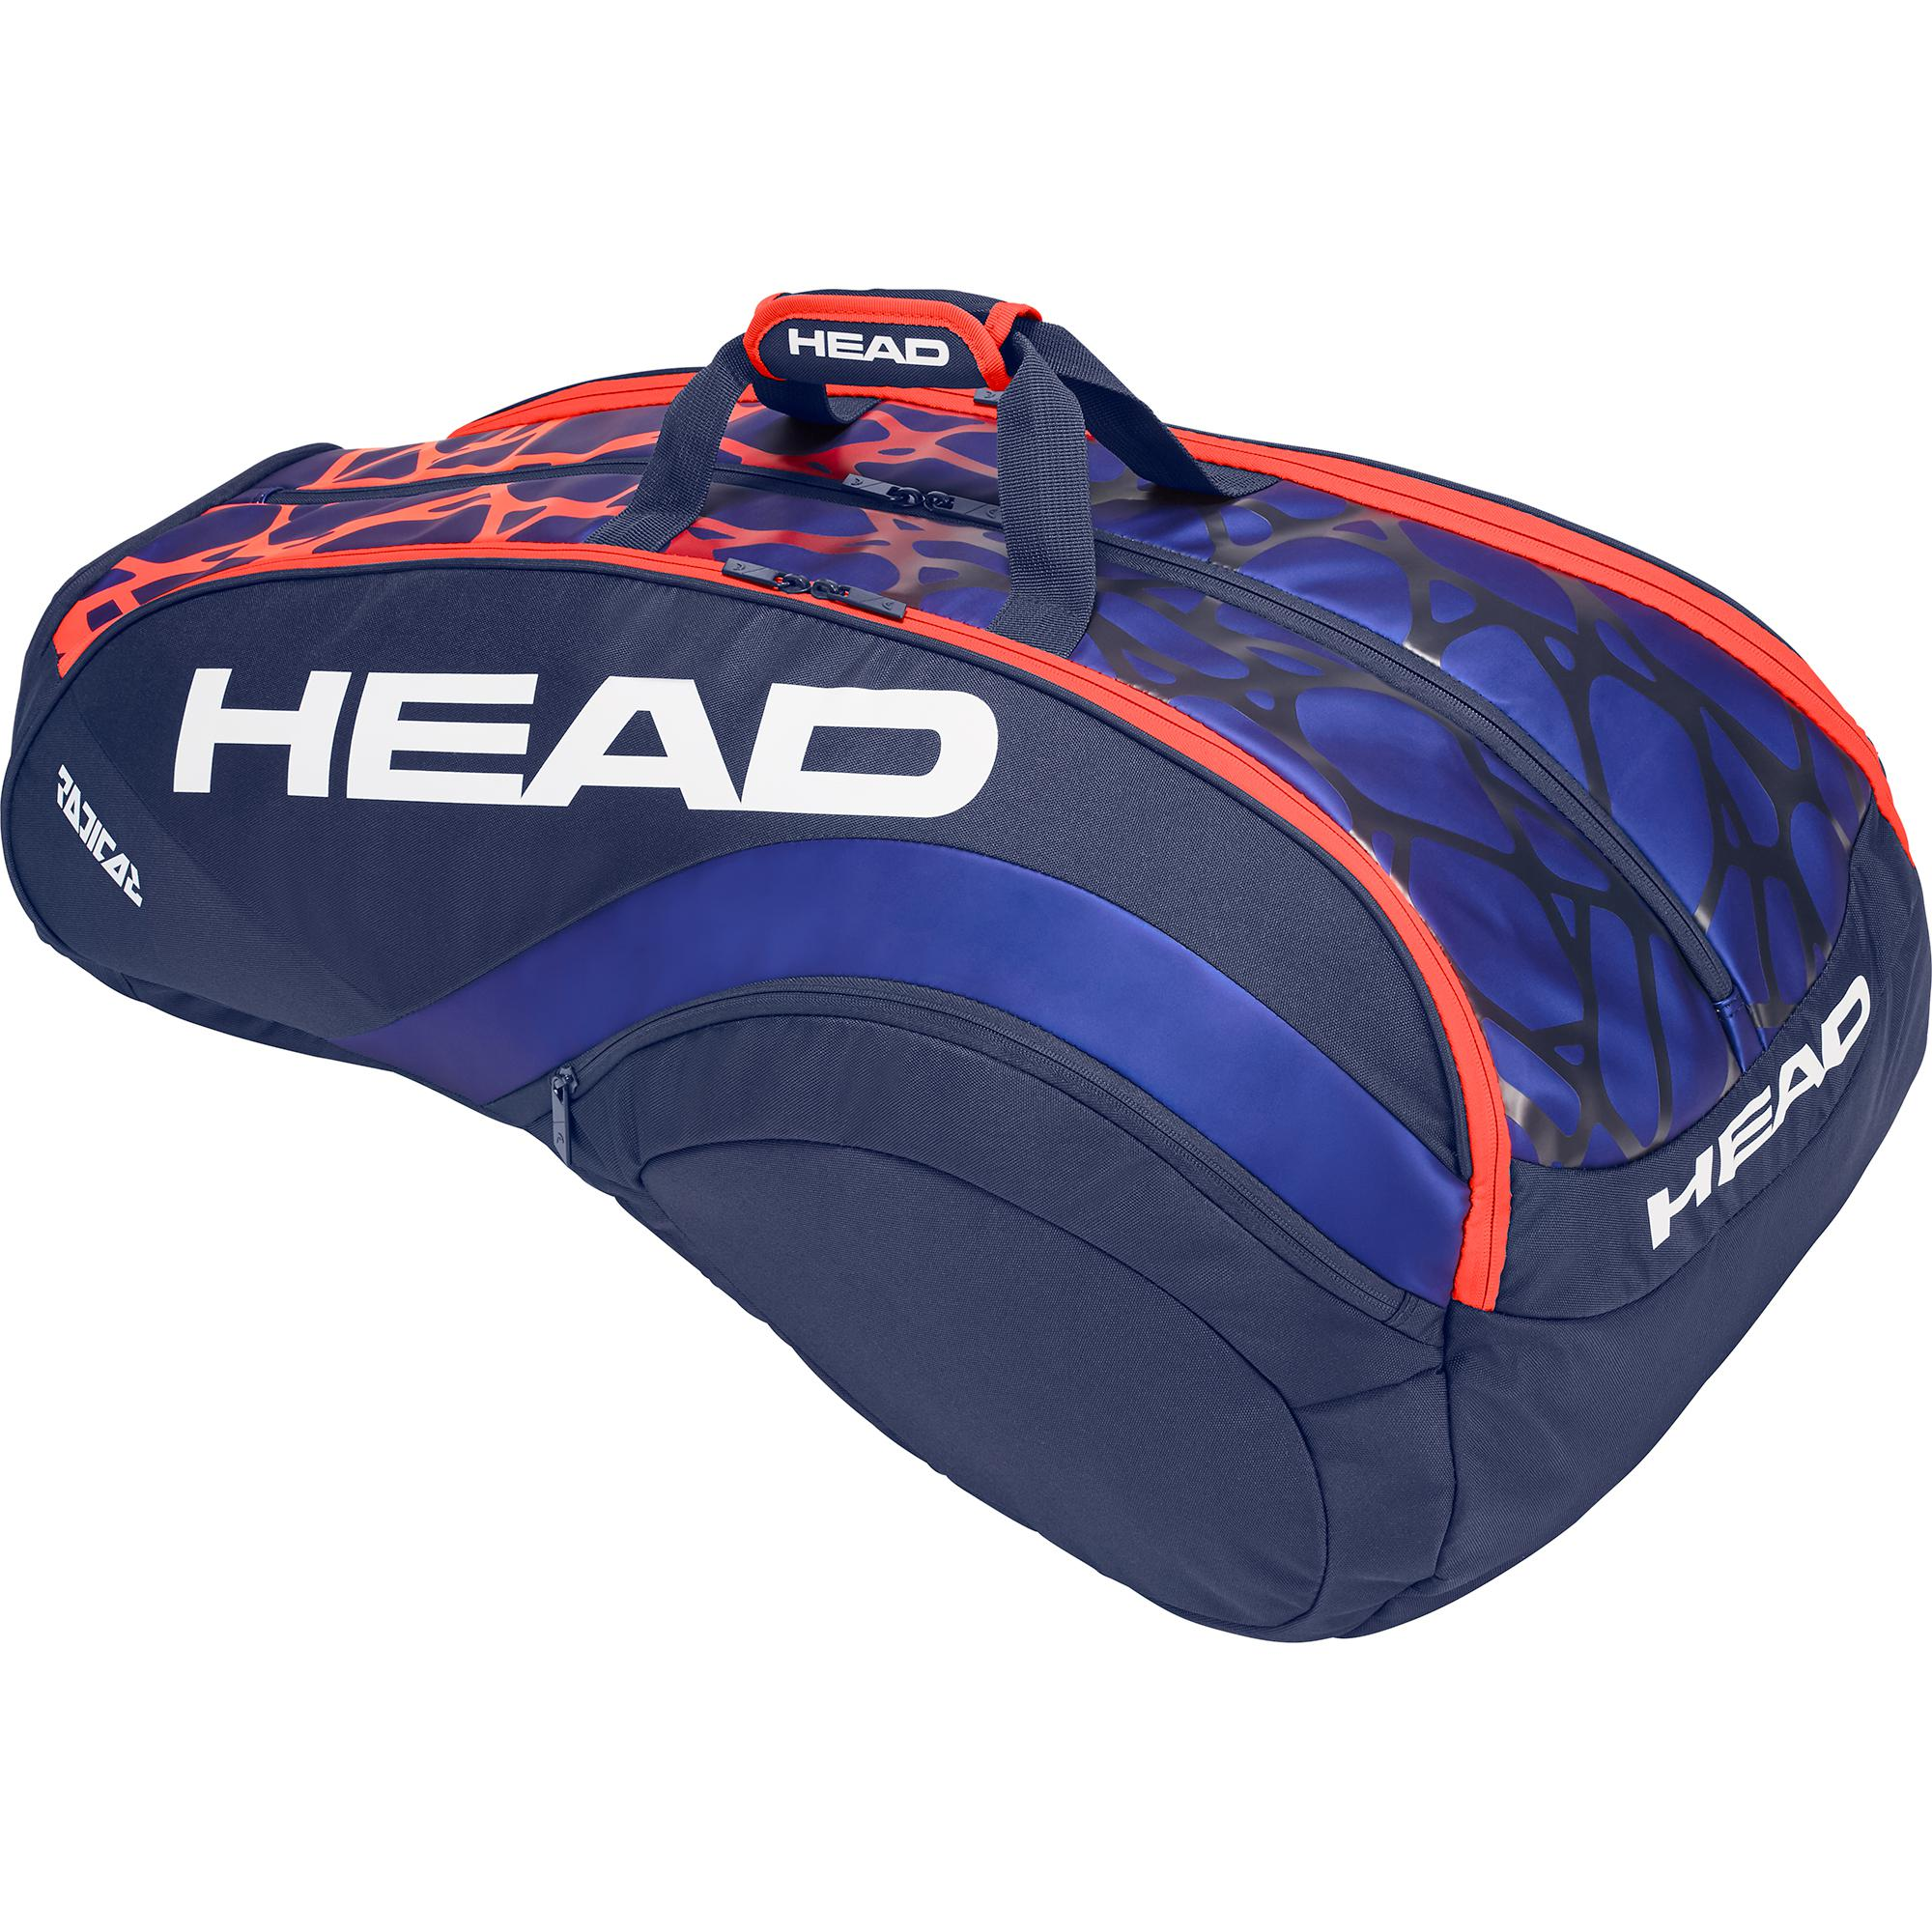 Head Radical Monstercombi 2018 12 Racket Bag